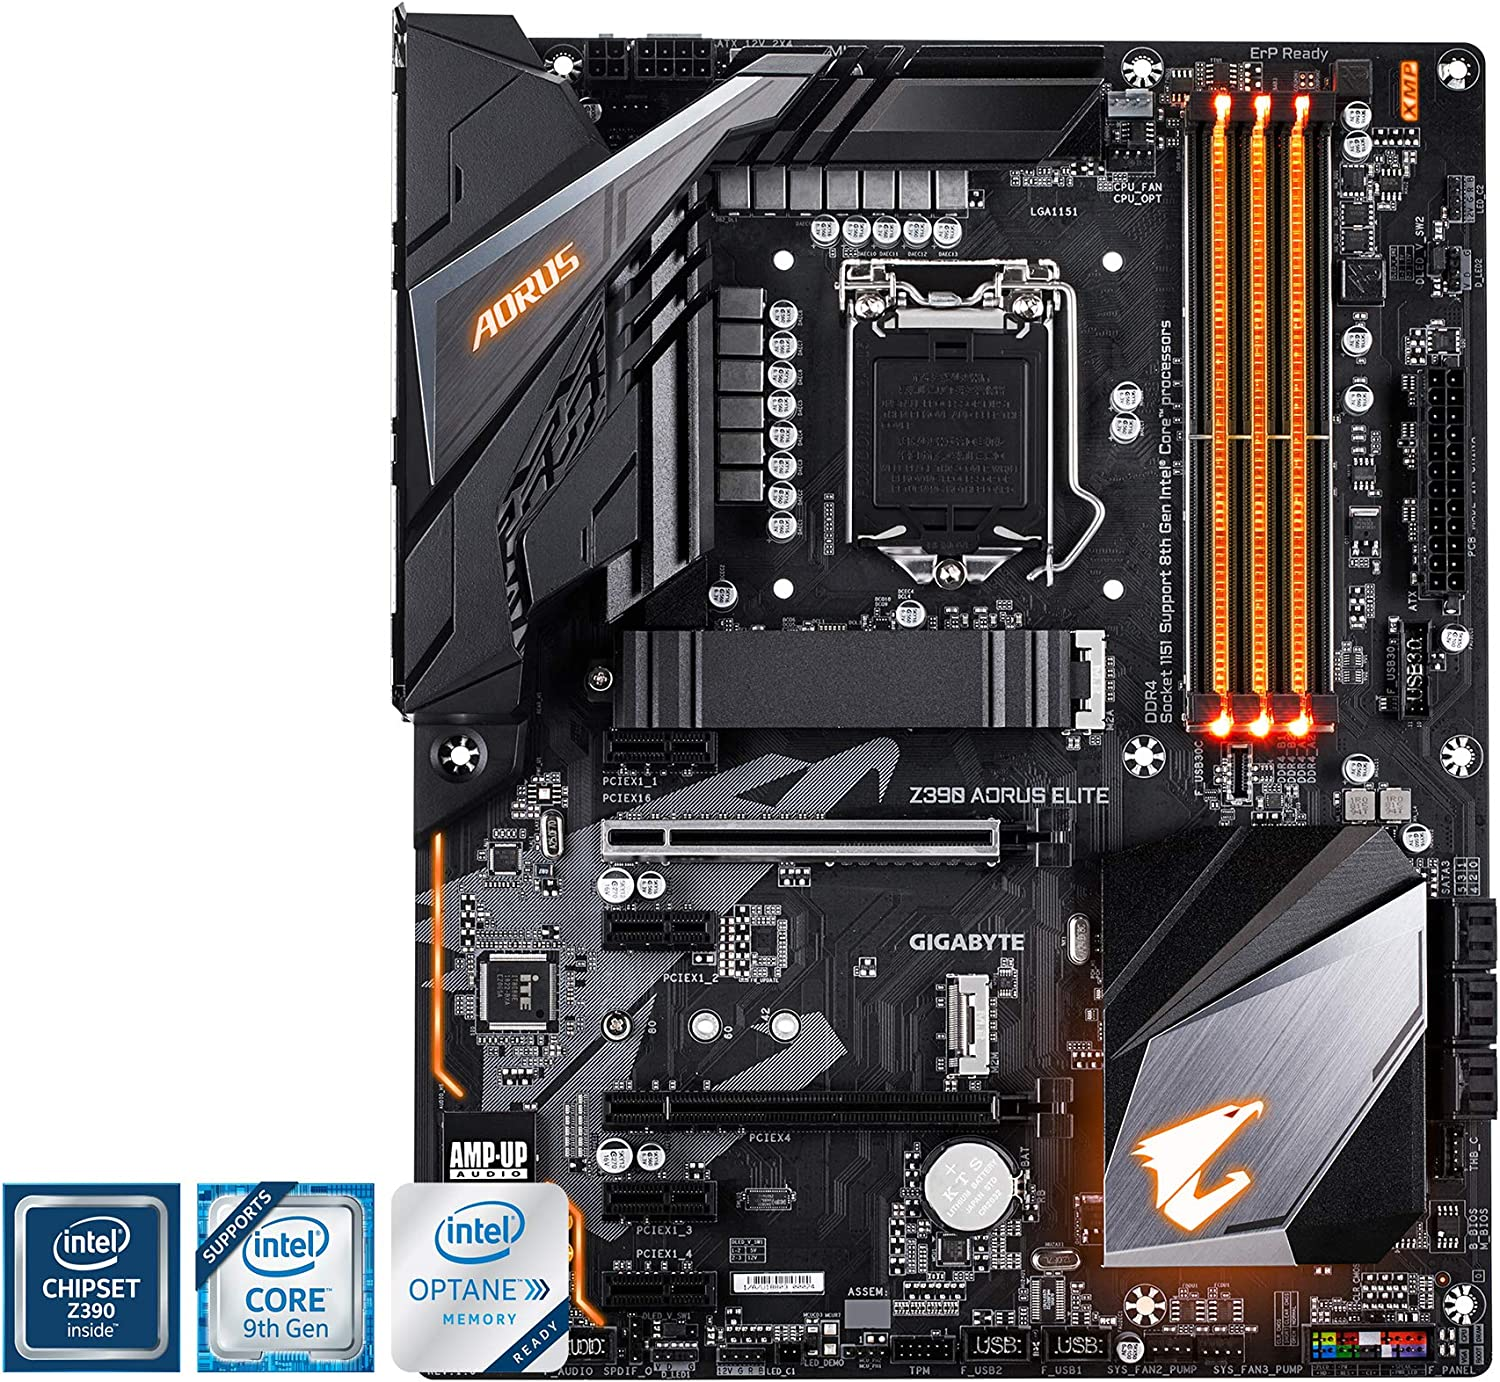 Best Motherboard for i7 8700k,Motherboard for i7 8700k, DigitalUpBeat - Your one step shop for all your  tech gifts and gadgets